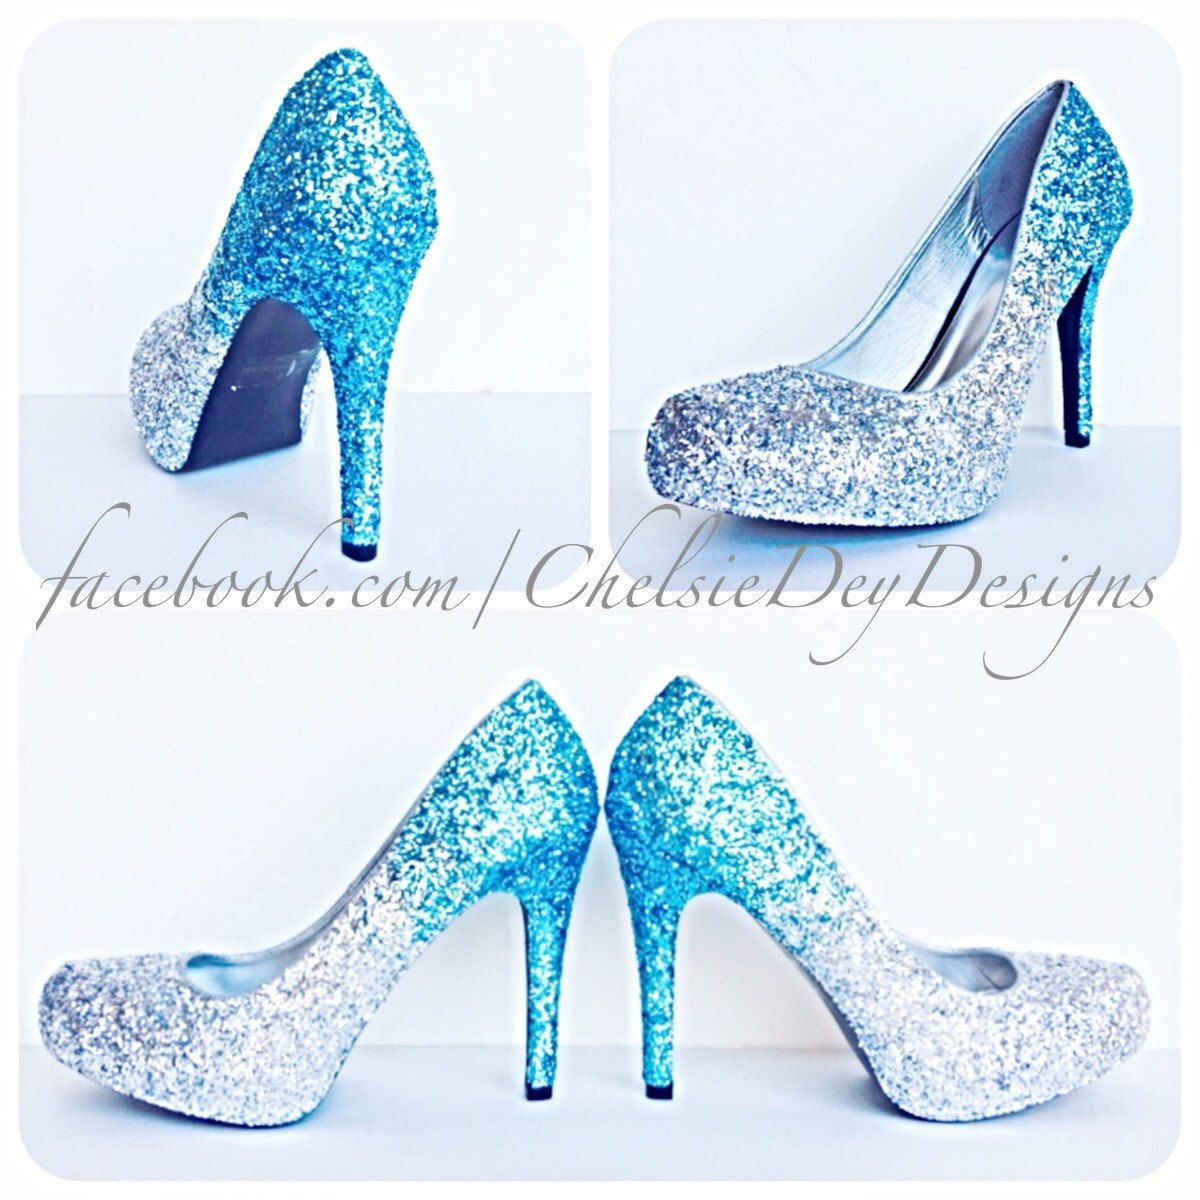 Glitter High Heels - Blue and Silver Pumps -Aqua Turquoise Ombre Platform  Shoes - Fade Two Tone Heels - Sparkly Glitzy Wedding Heels - pinned by  pin4etsy. ... b83740bf065d